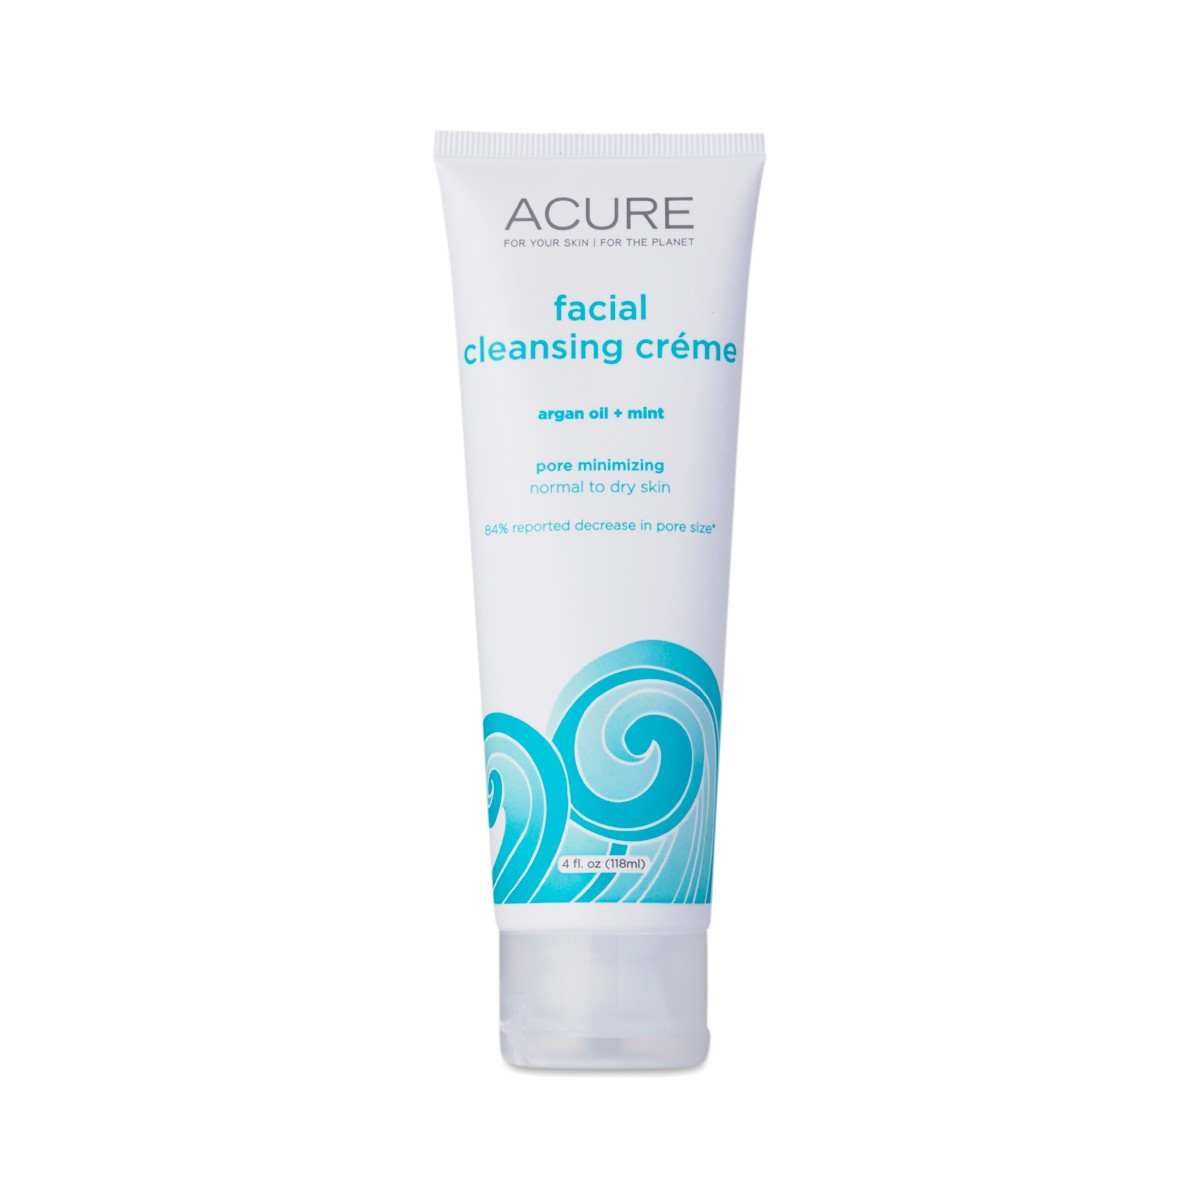 Acure Facial Cleansing Creme Review